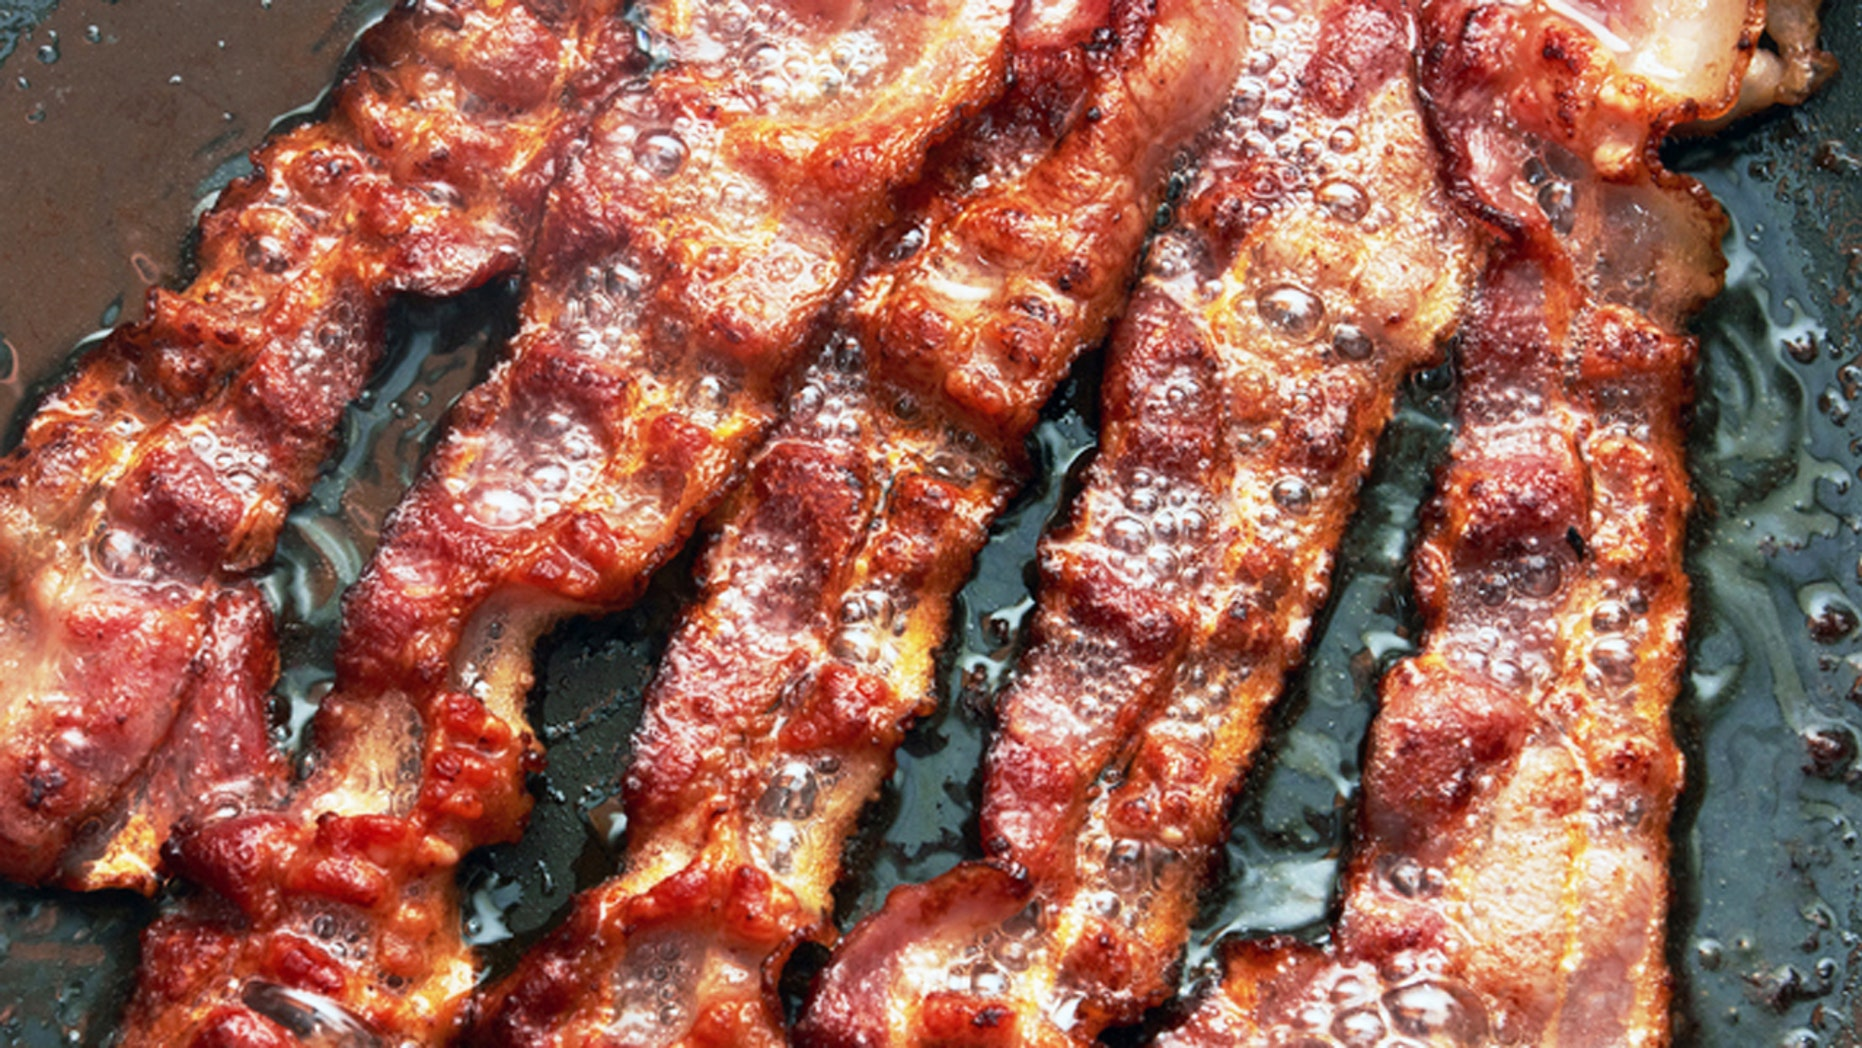 Bacon slice being cooked in frying pan. Close up.